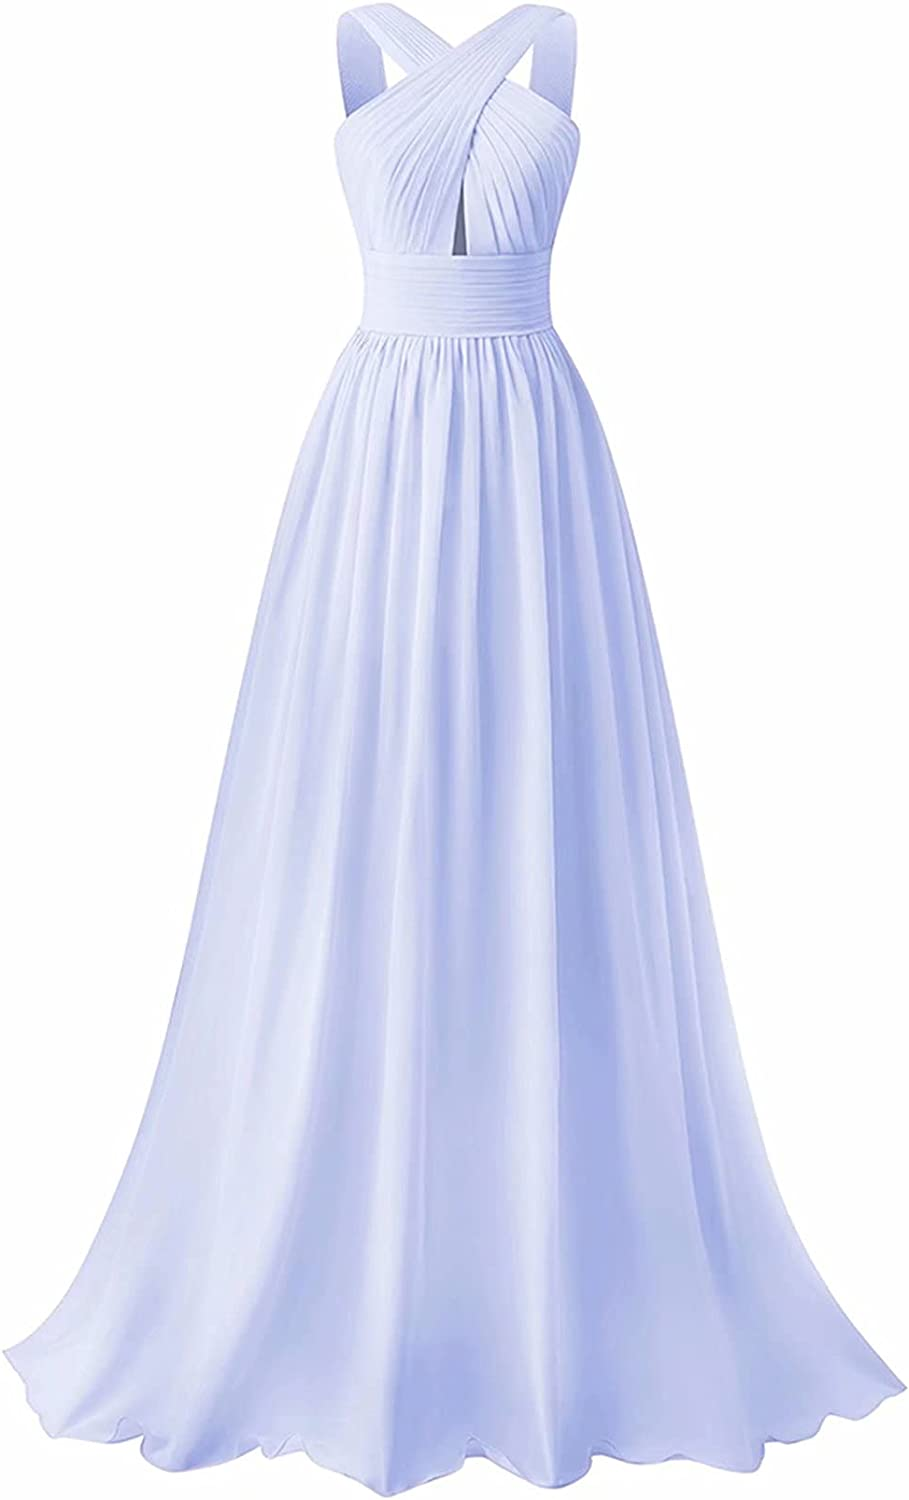 SMORBRID Crisscross Neck Bridesmaid Dress Long Chiffon Pleated Formal Prom Dress for Wedding Party Gown